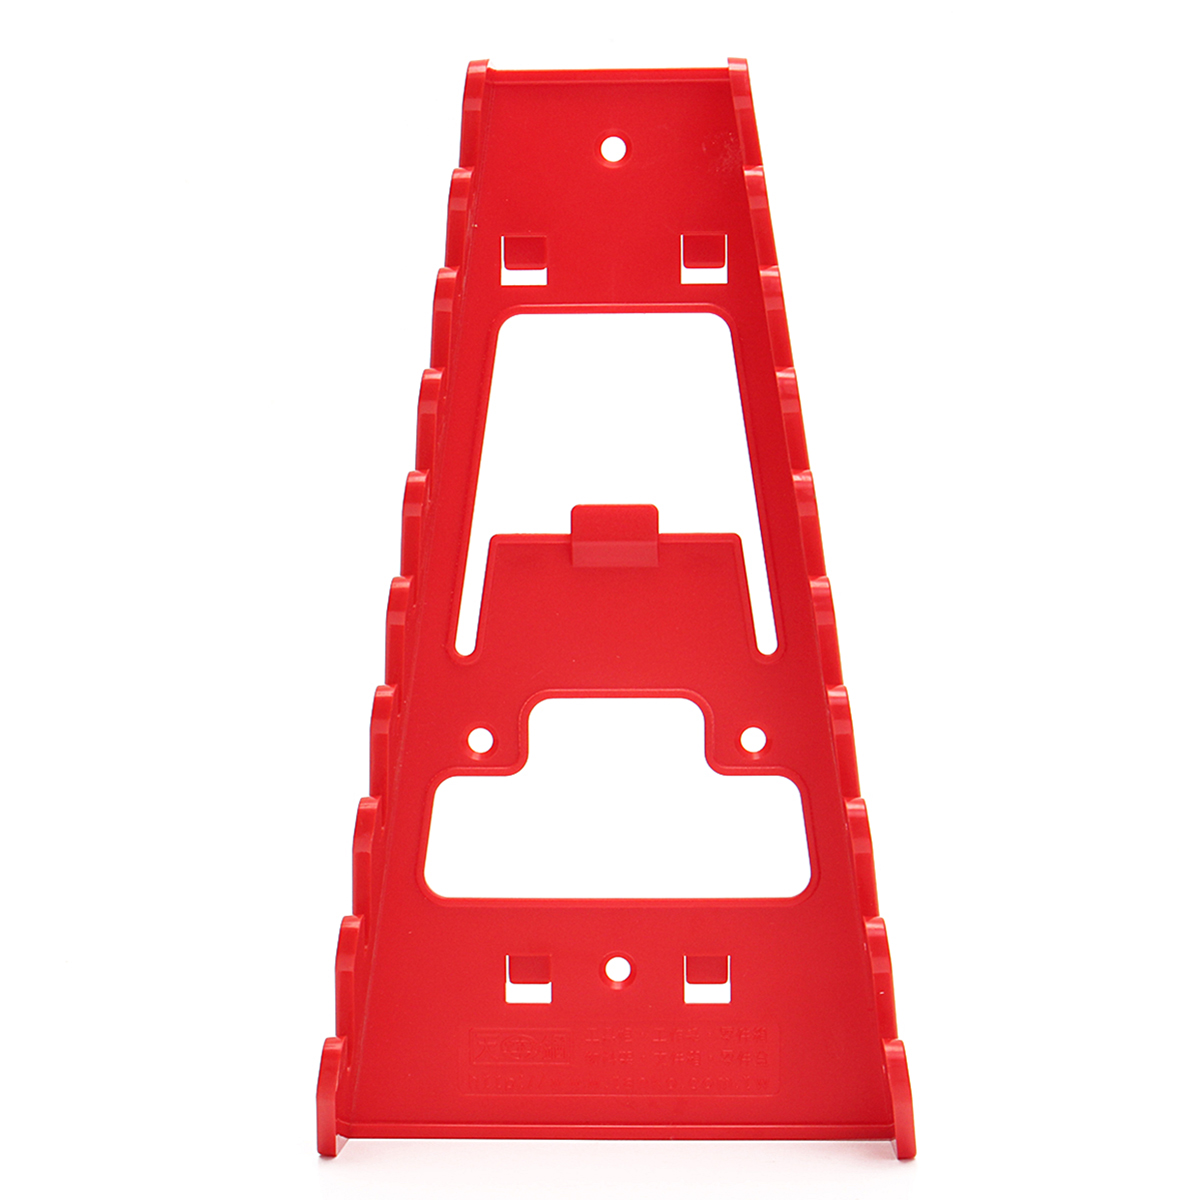 22x12x6cm Red Spanner Rack Wrench Holder Storage Wrench Organizer Tools